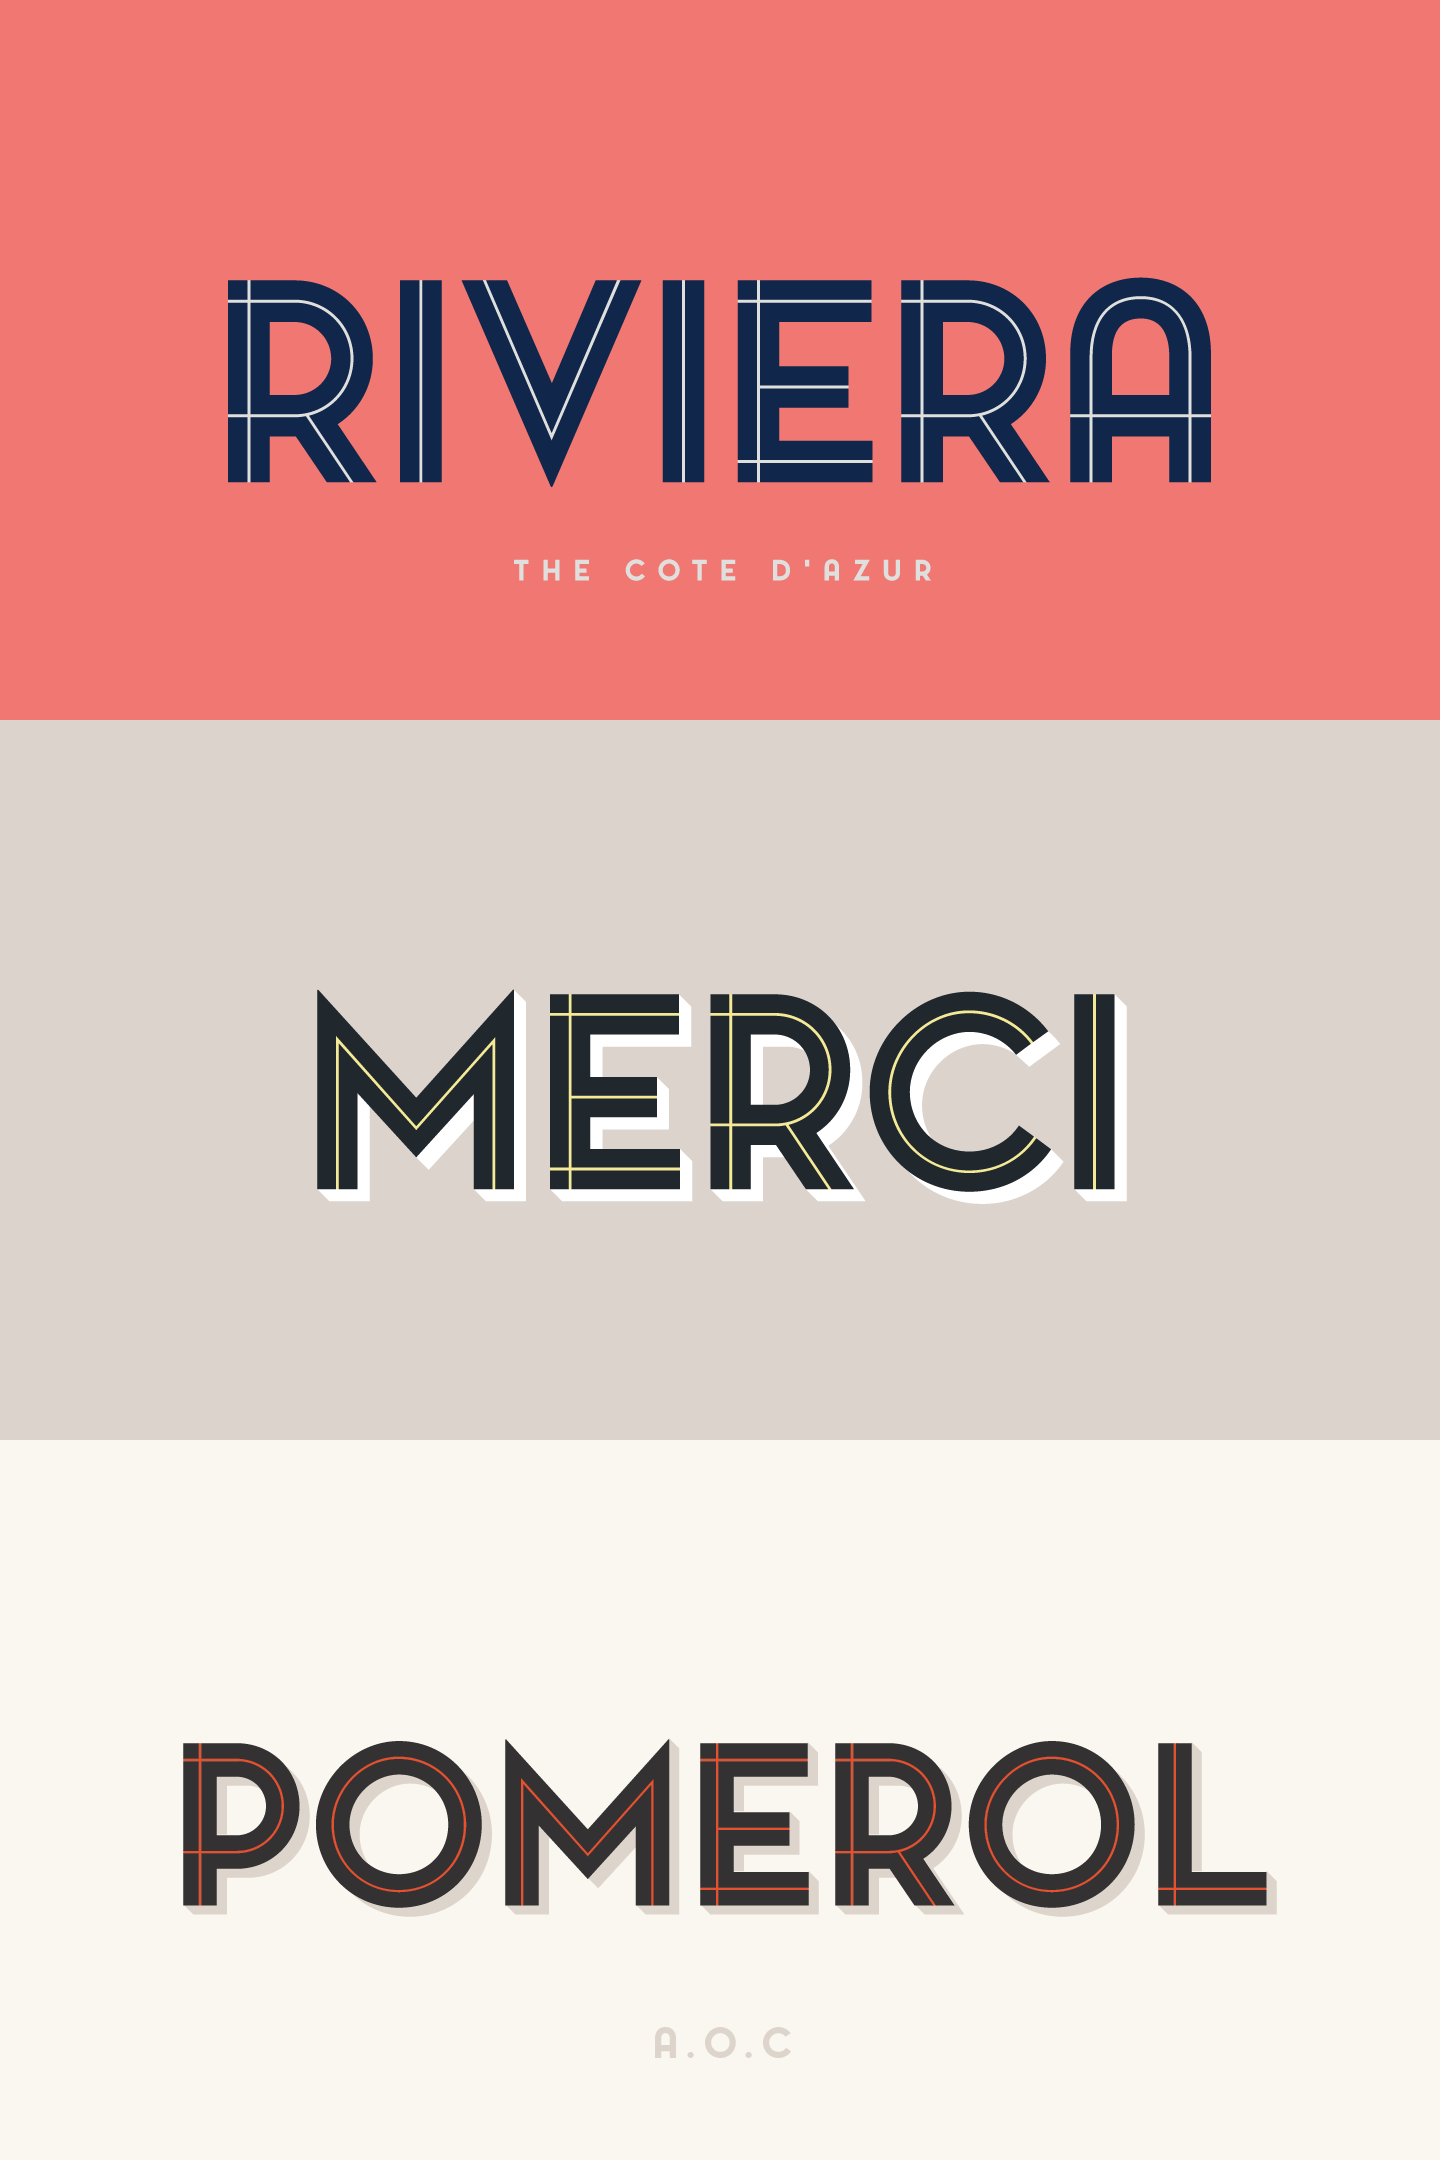 Pontiac Inline is a layered type family designed by Fanny Coulez and Julien Saurin for La Goupil Paris.